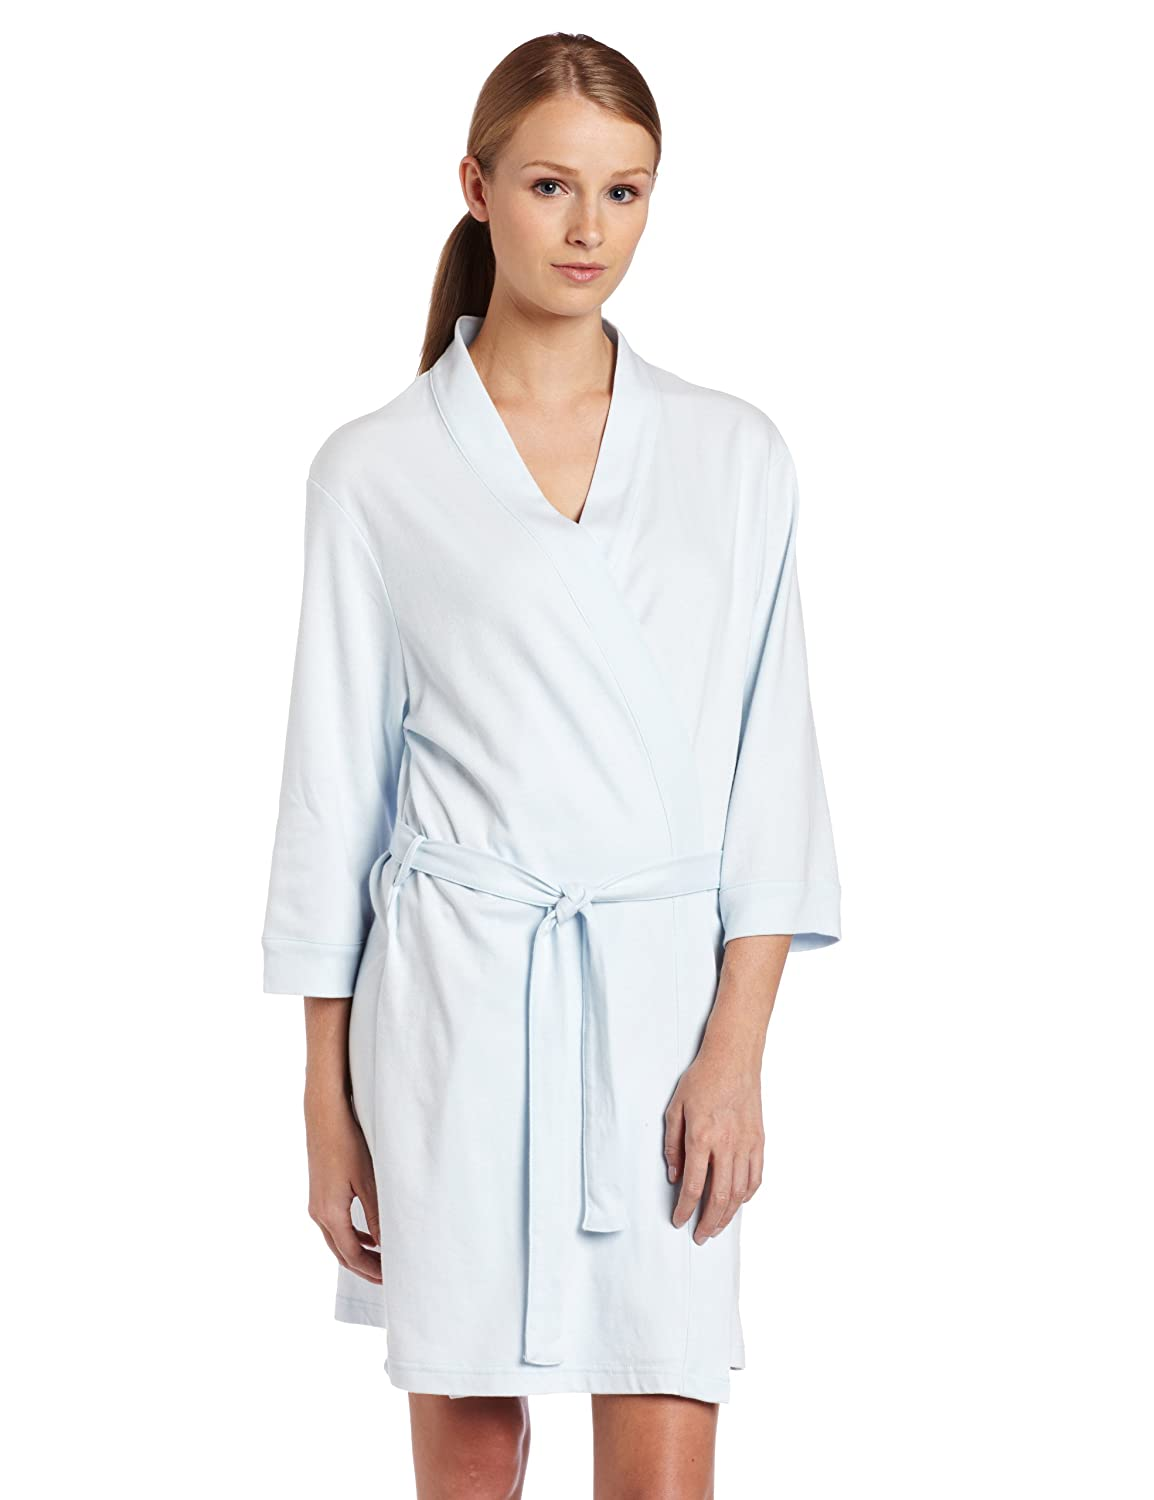 Seven Sons Siete Apparel Hotel SPA Collection algodón de Punto Kimono Robe